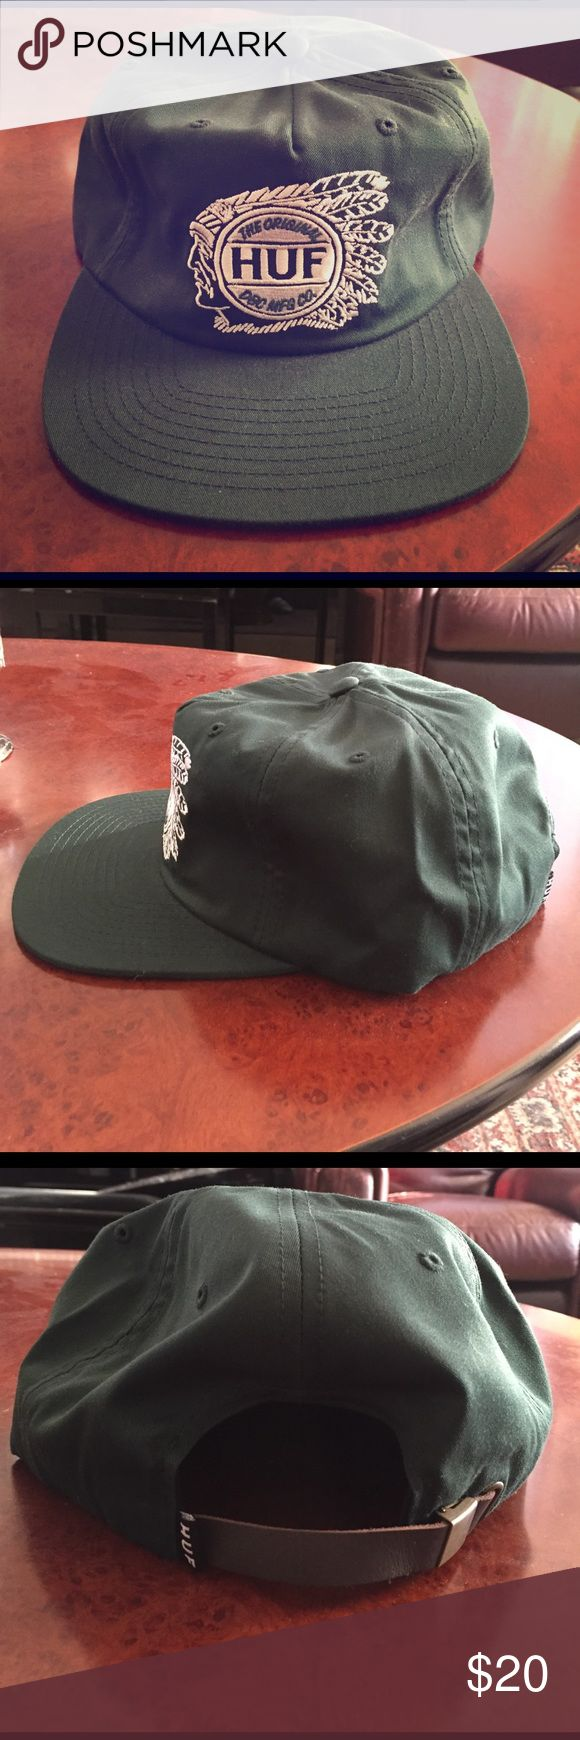 HUF hat HUF hat. Dark green with emblem at the front (Native American chief with HUF logo on top). Brown leather strap back with gold clamp and HUF logo on the other side of clamp. Made out of polyester and cotton. Great condition only worn a few times. HUF Accessories Hats